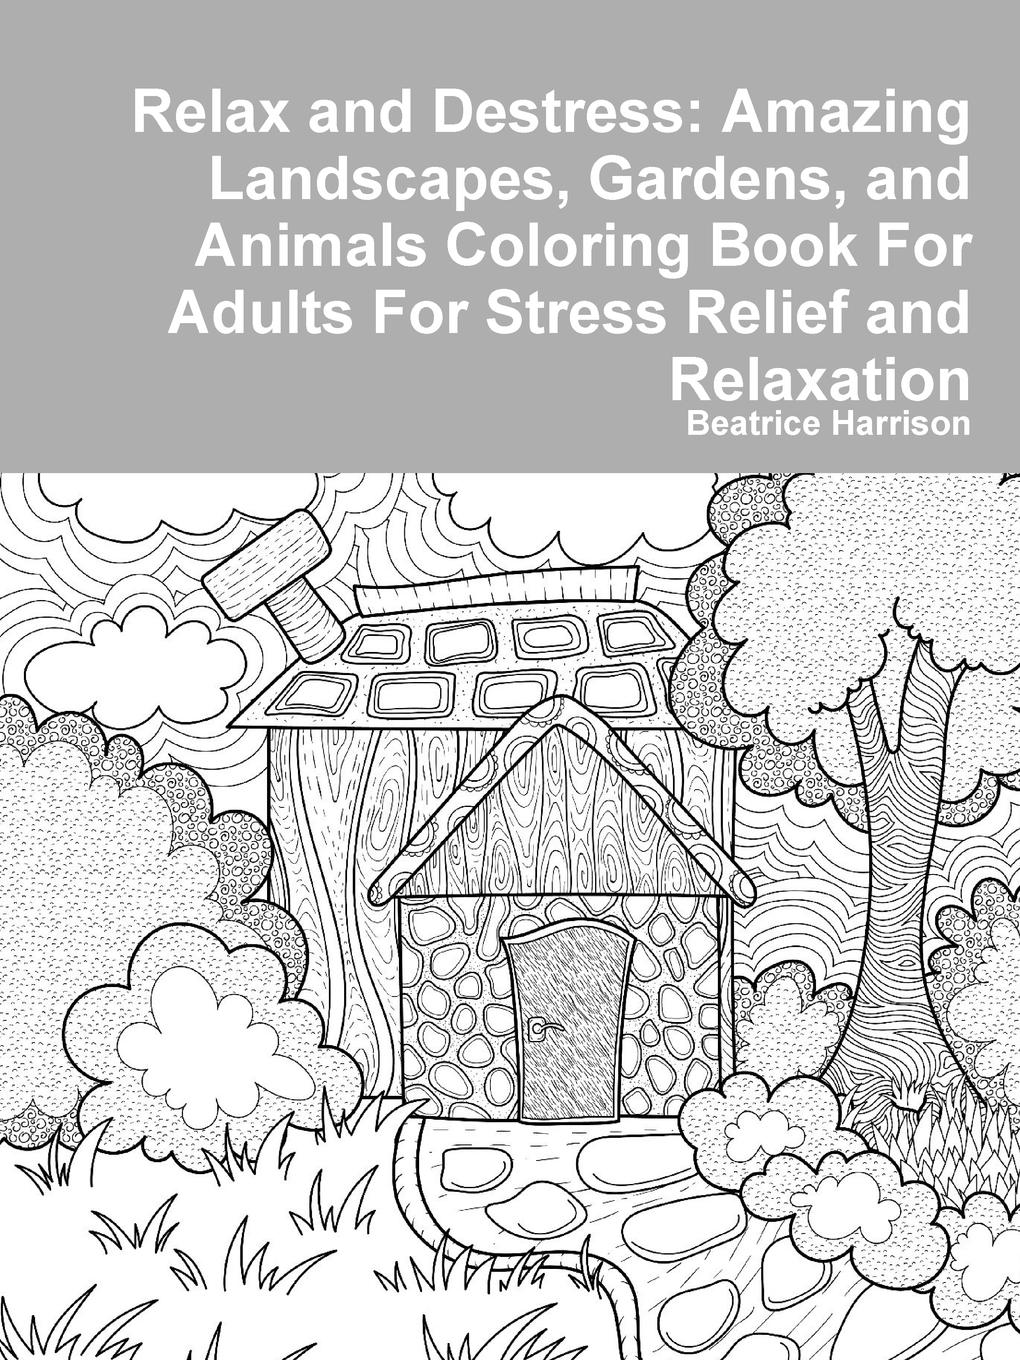 Beatrice Harrison Relax and Destress. Amazing Landscapes, Gardens, and Animals Coloring Book For Adults For Stress Relief and Relaxation colorful hexagon fidget spinner adhd stress relief toy relaxation gift for adults